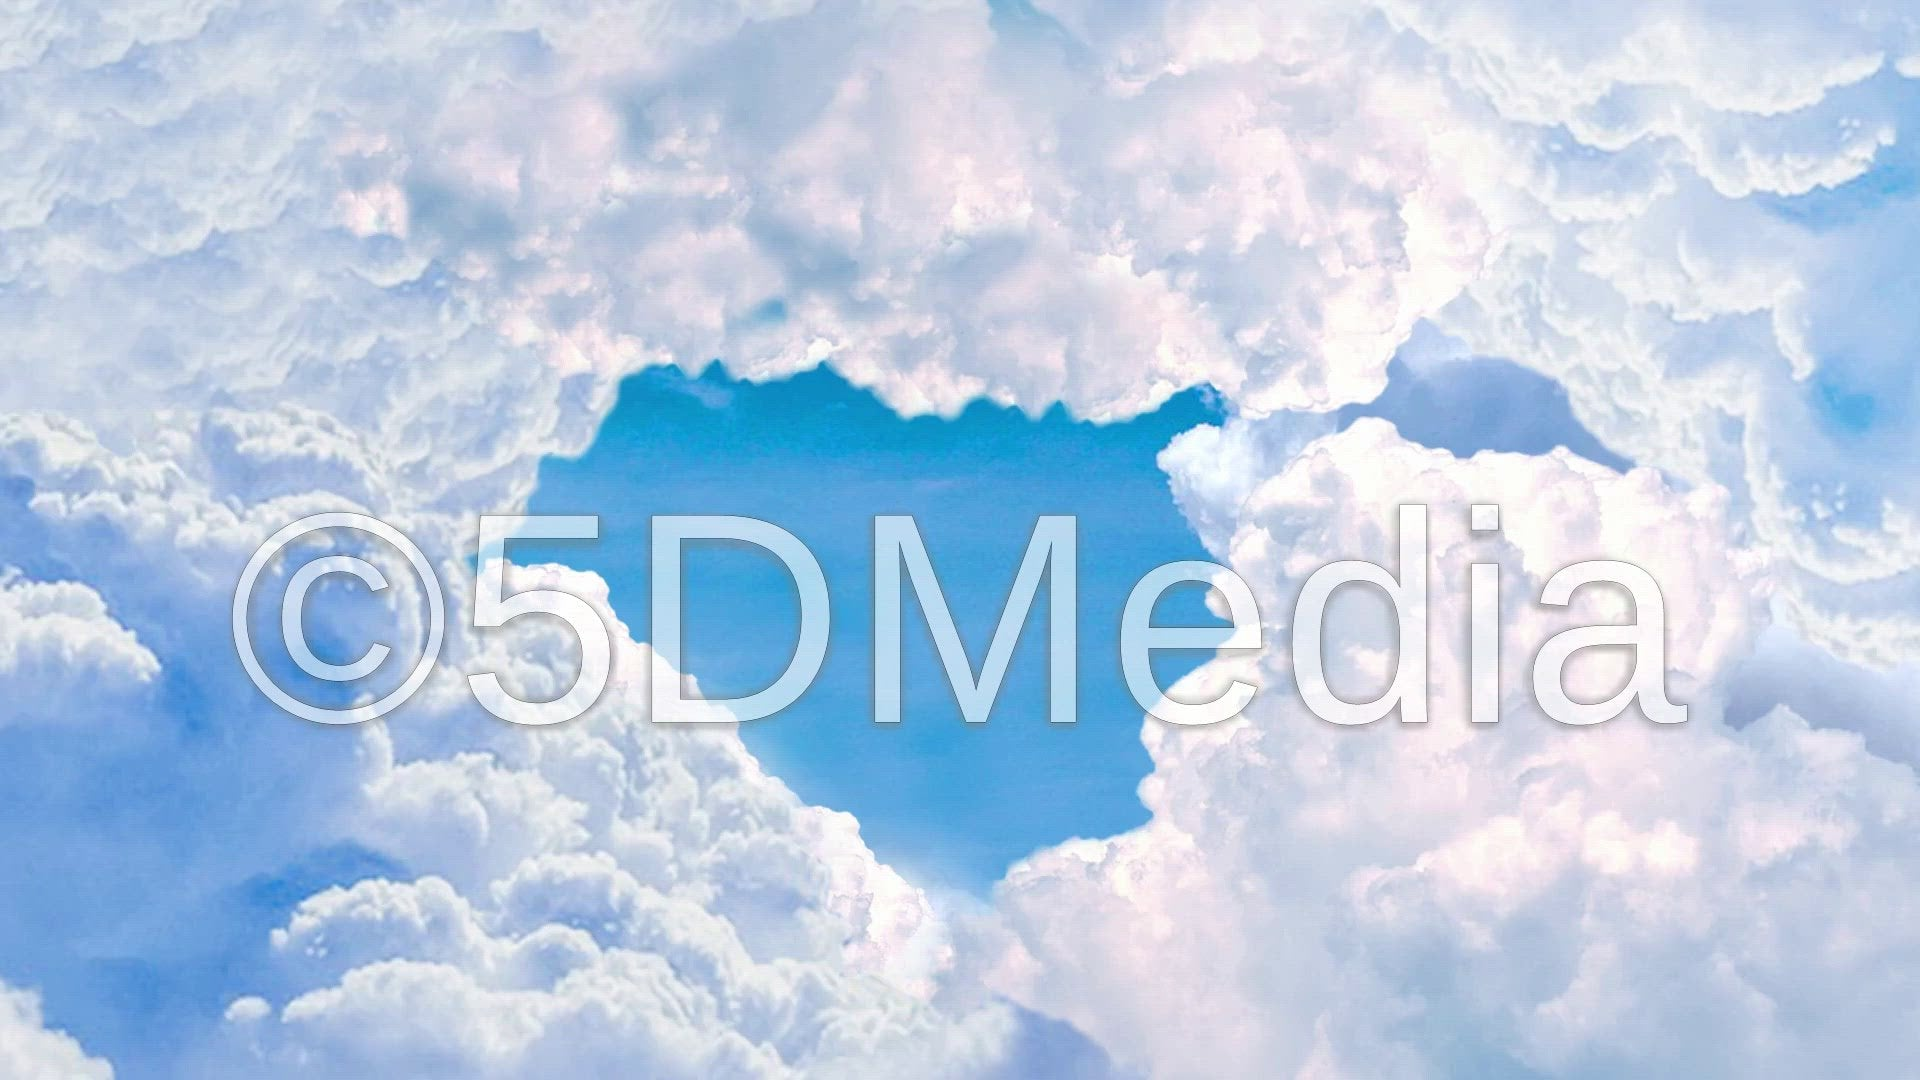 Moving Sky Intro Video Asset - 1920 x 1080 instant download